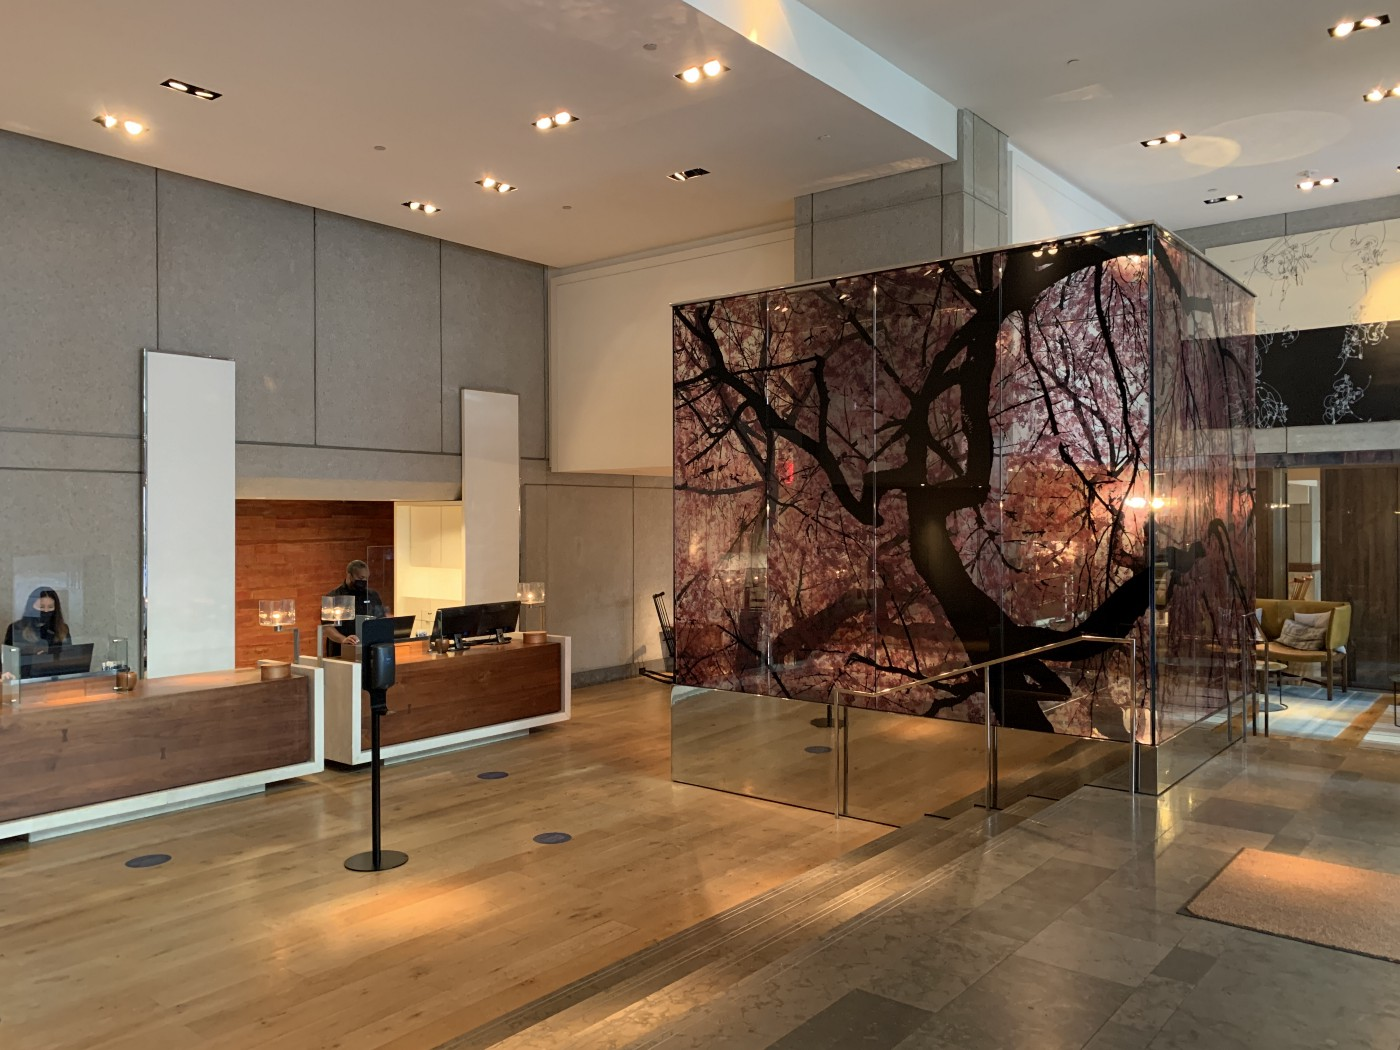 Park Hyatt Washington D.C.'s lobby and front desk which has a painting of a cherry blossom tree on glass.